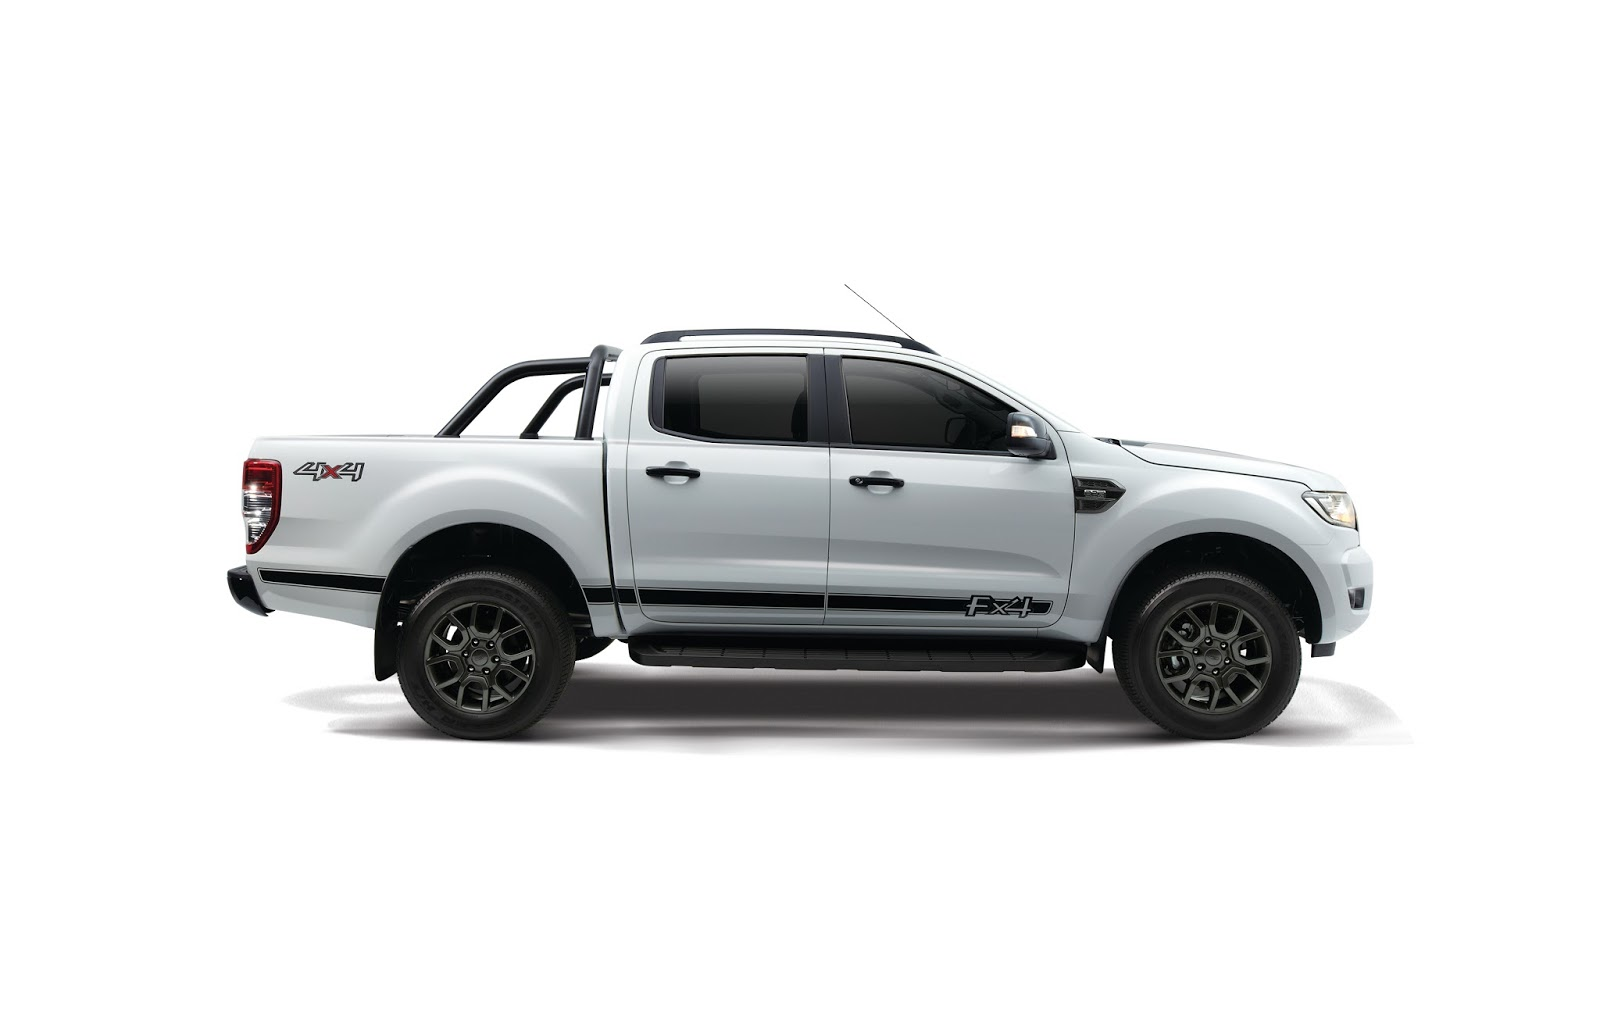 Ford Ranger 2018 Malaysia >> Motoring-Malaysia: New Colours For The 2018 Ford Ranger - Meteor Grey for the Wildtrak and Cool ...